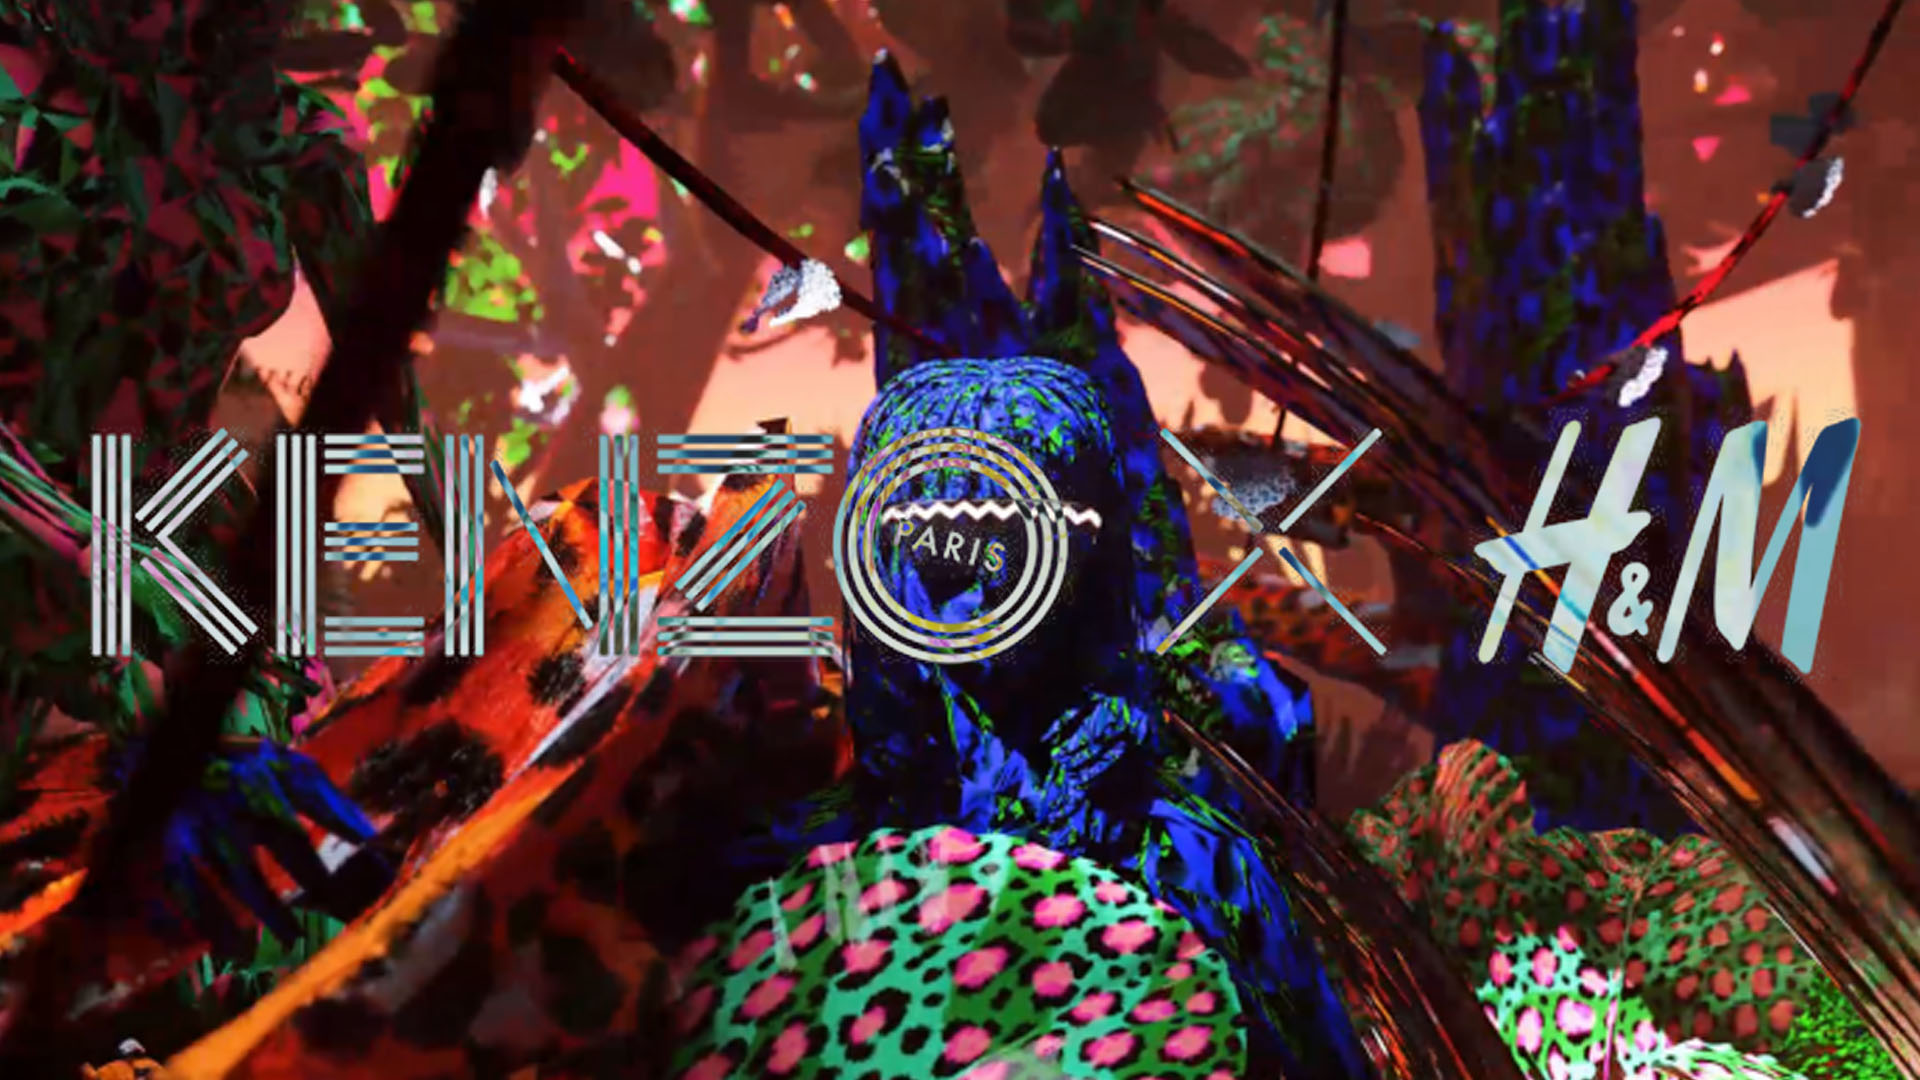 5 THINGS WE EXPECT IN THE UPCOMING H&M X KENZO COLLABORATION